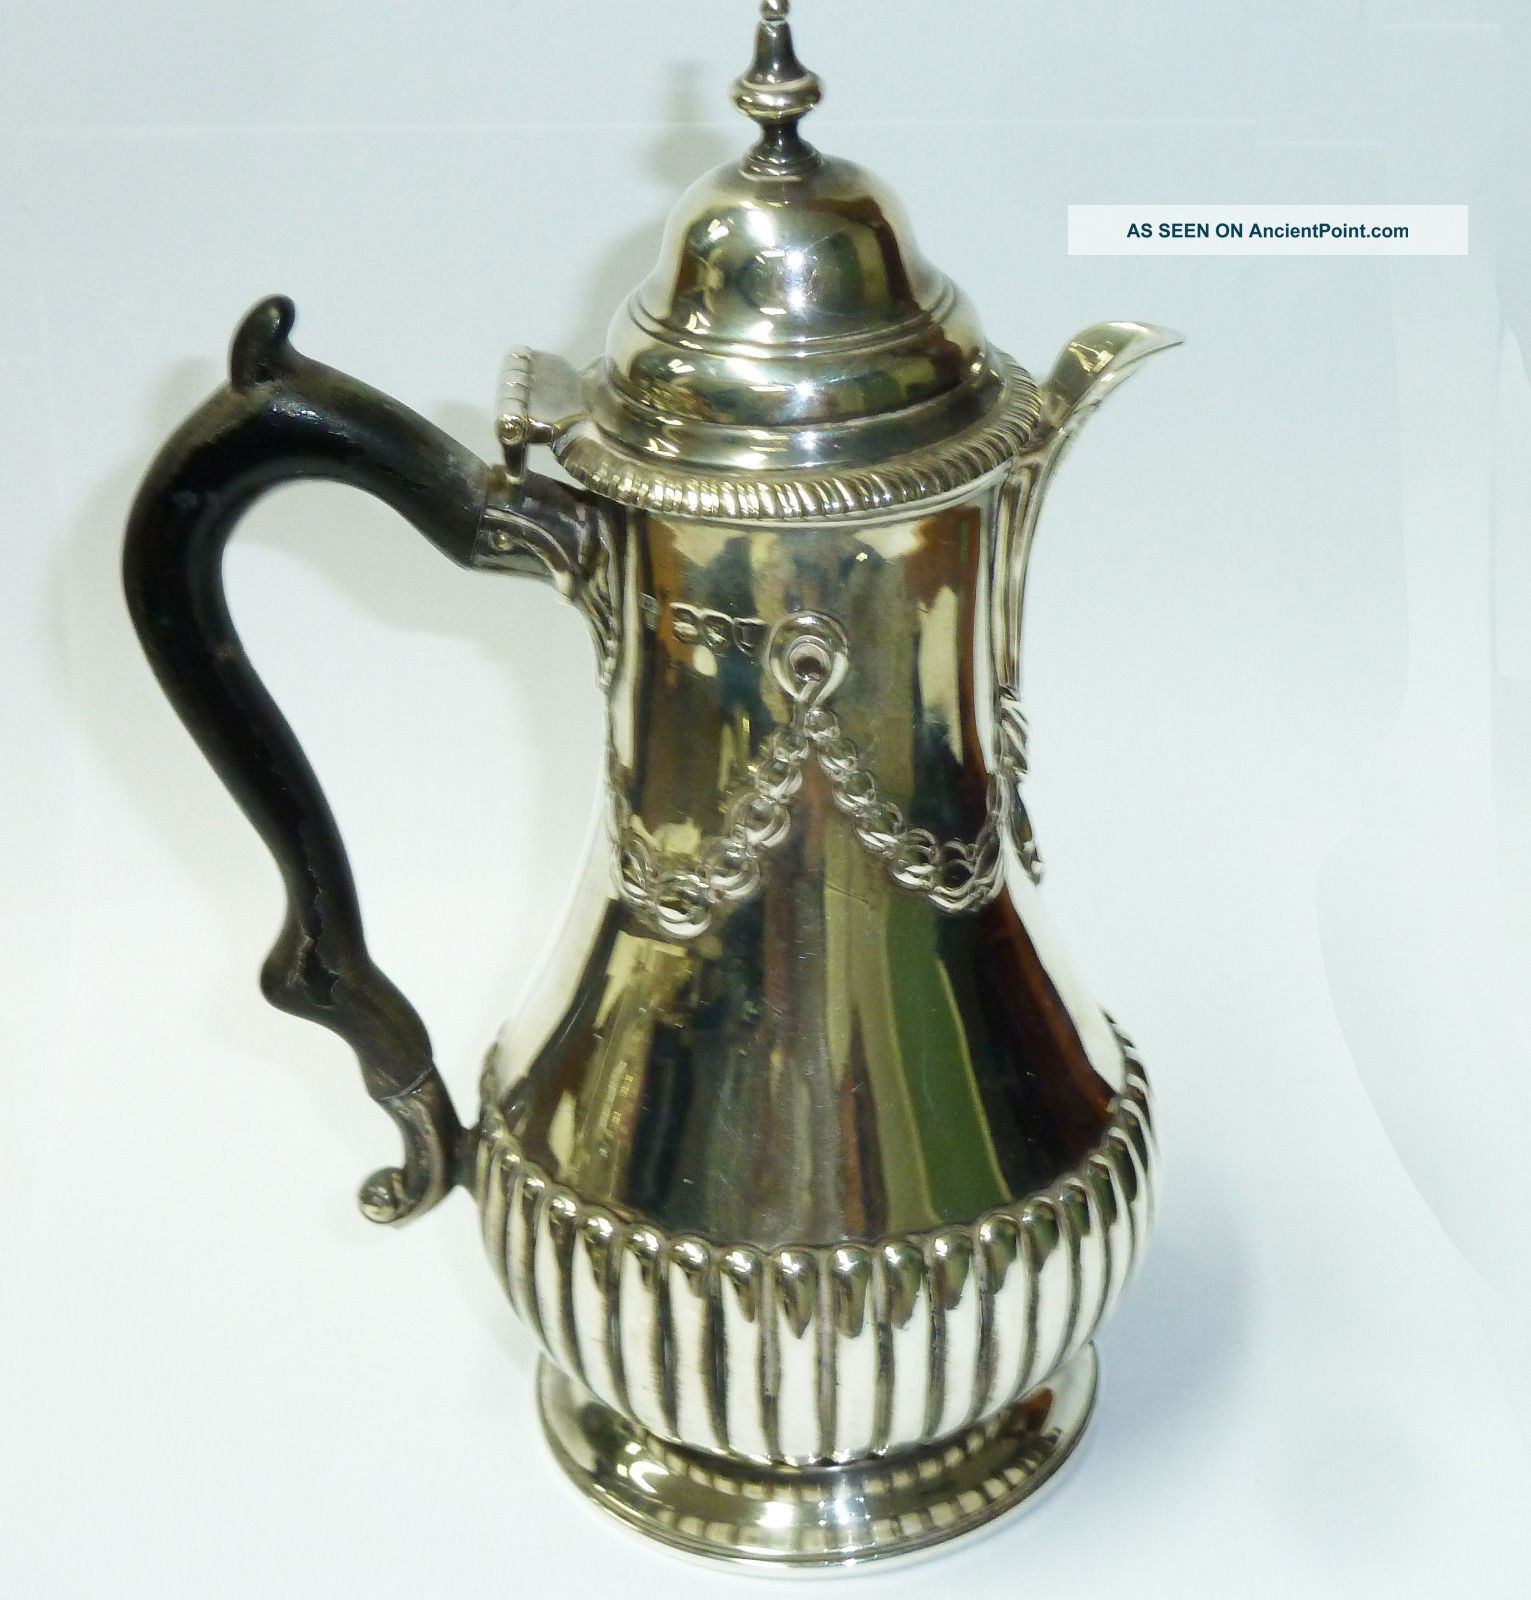 Antique Good Solid Sterling Silver Bachelors Coffee Pot - 321g - London 1895 Tea/Coffee Pots & Sets photo